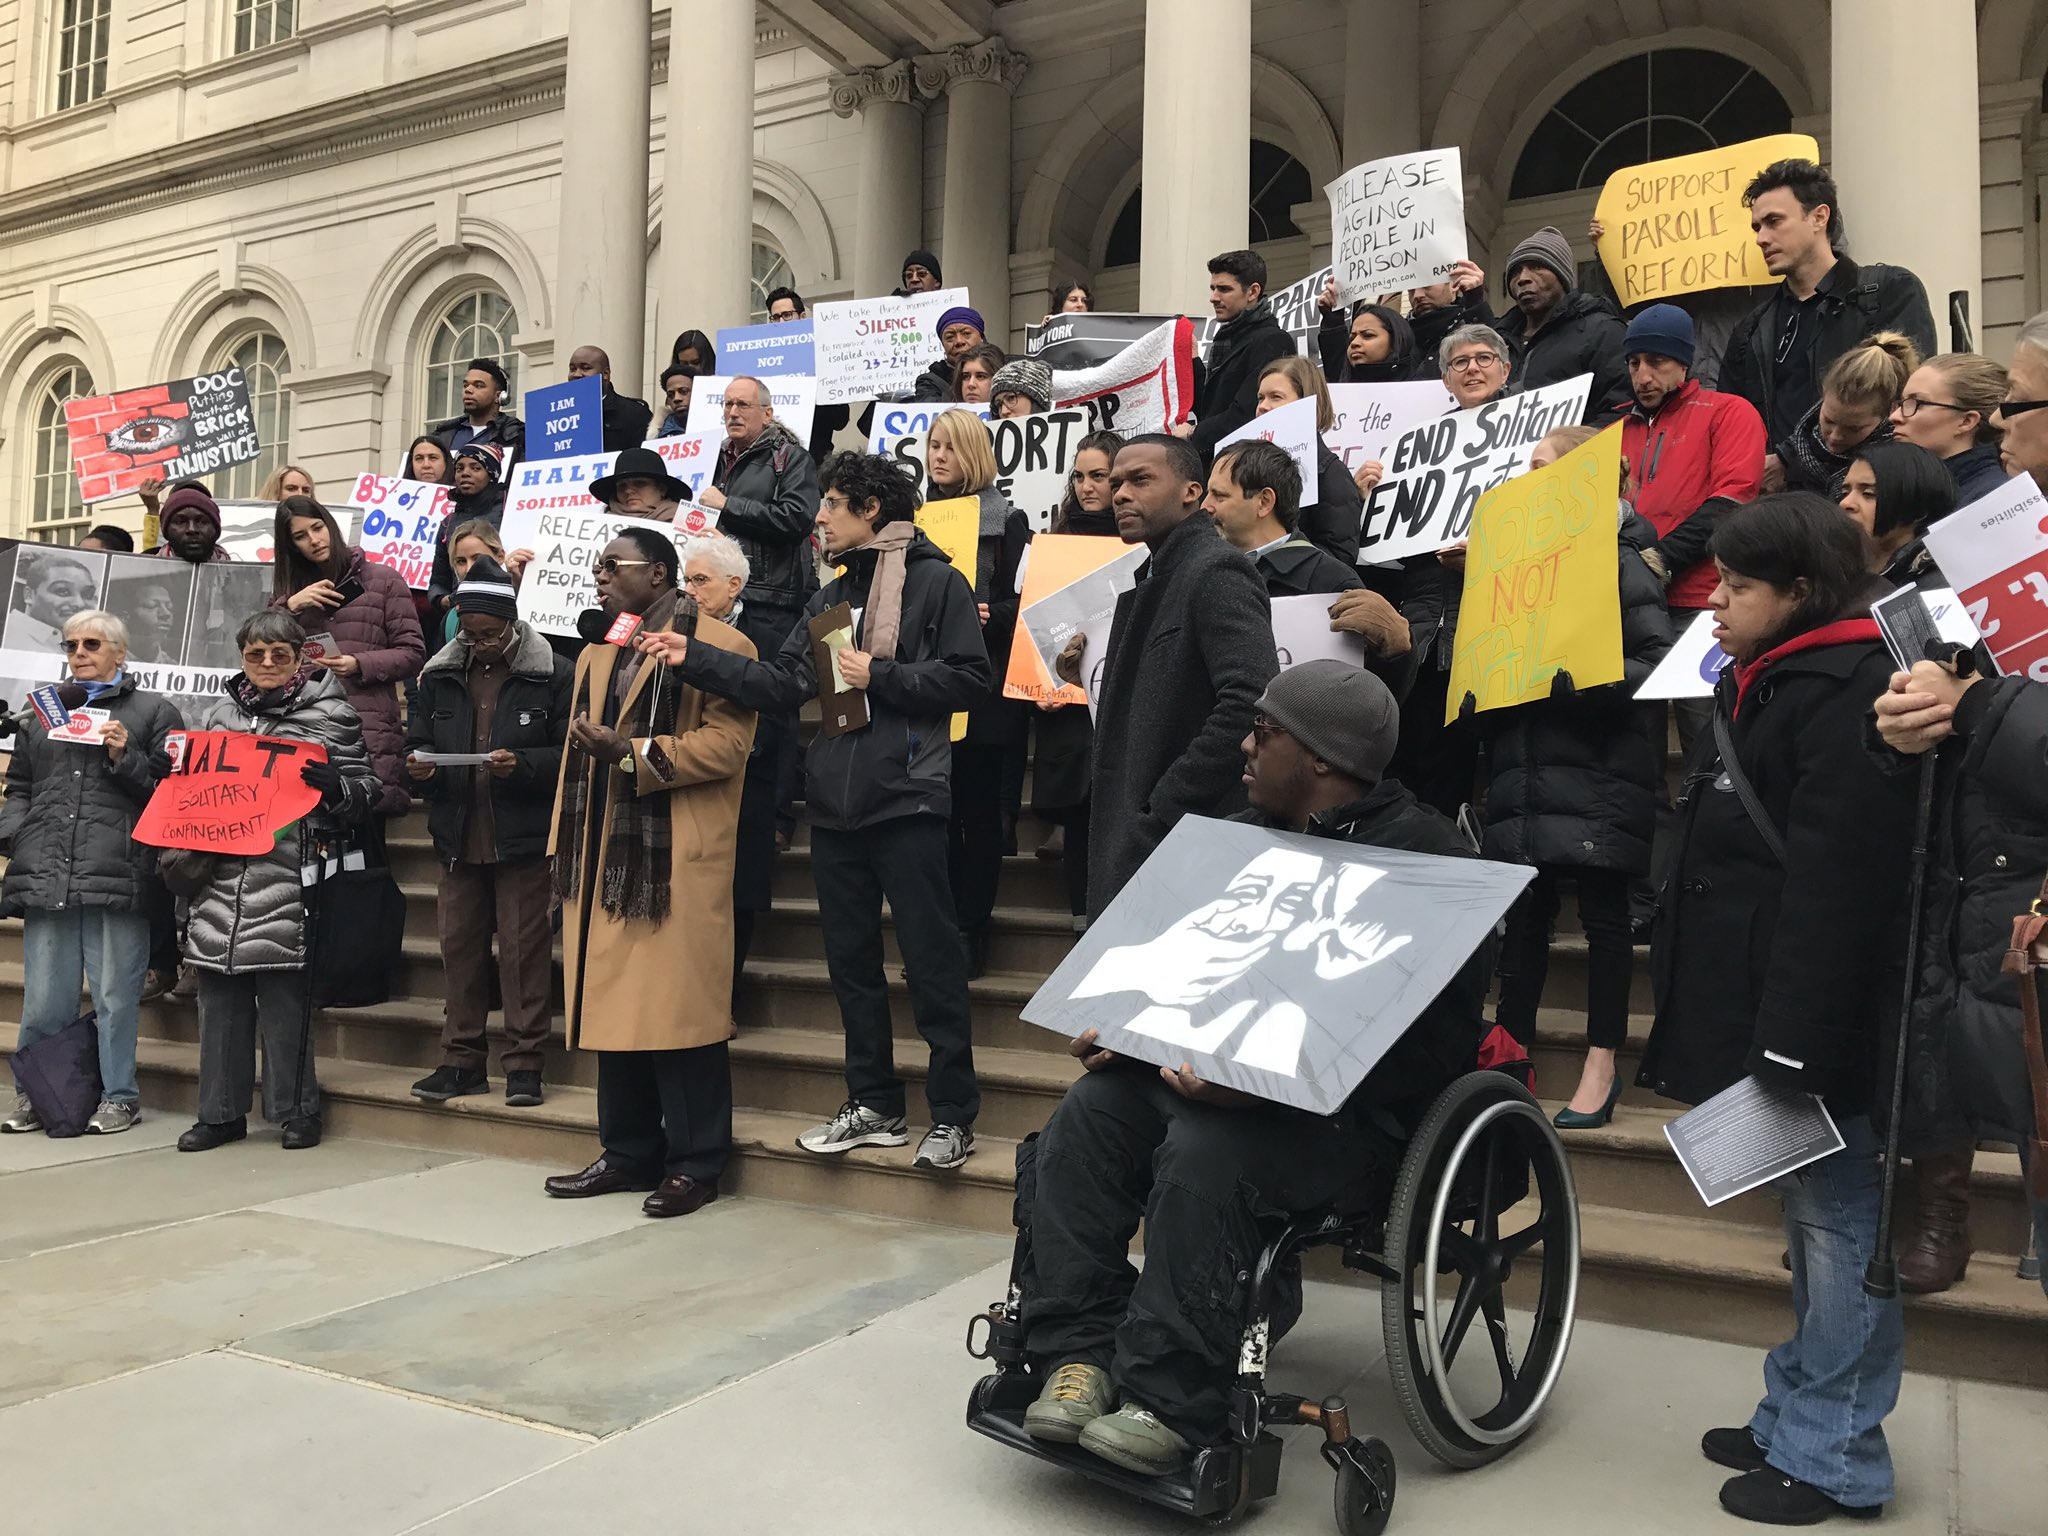 Our bail system is deeply flawed & punishes poor people. A better system IS possible. #challengeincarcerationny #closerikers https://t.co/dUDiJcVuHq